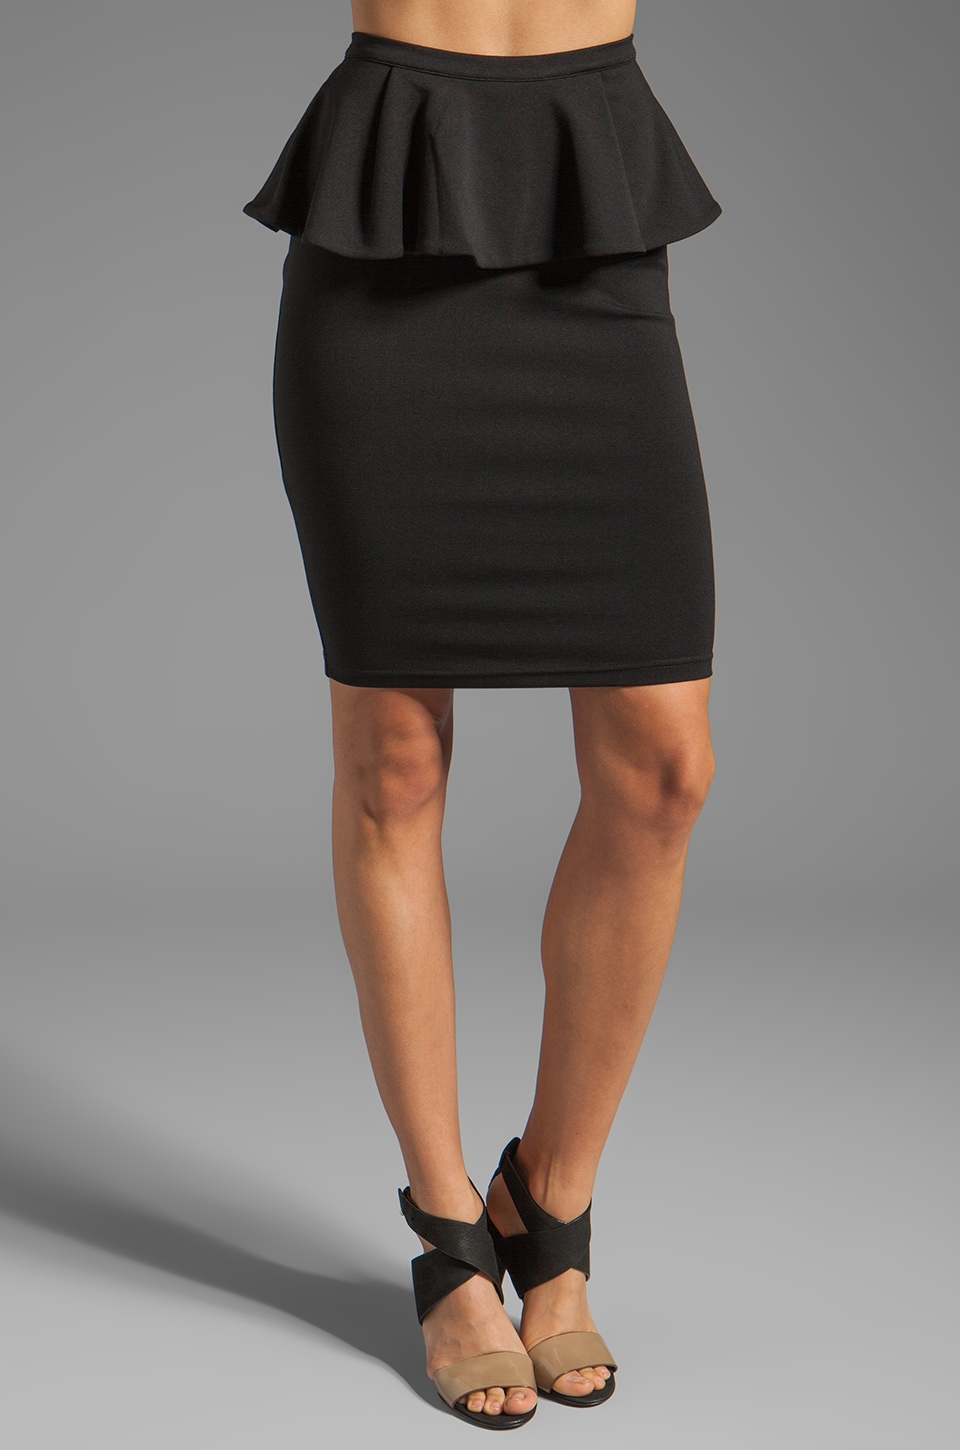 Bardot Peplum Pencil Skirt in Black